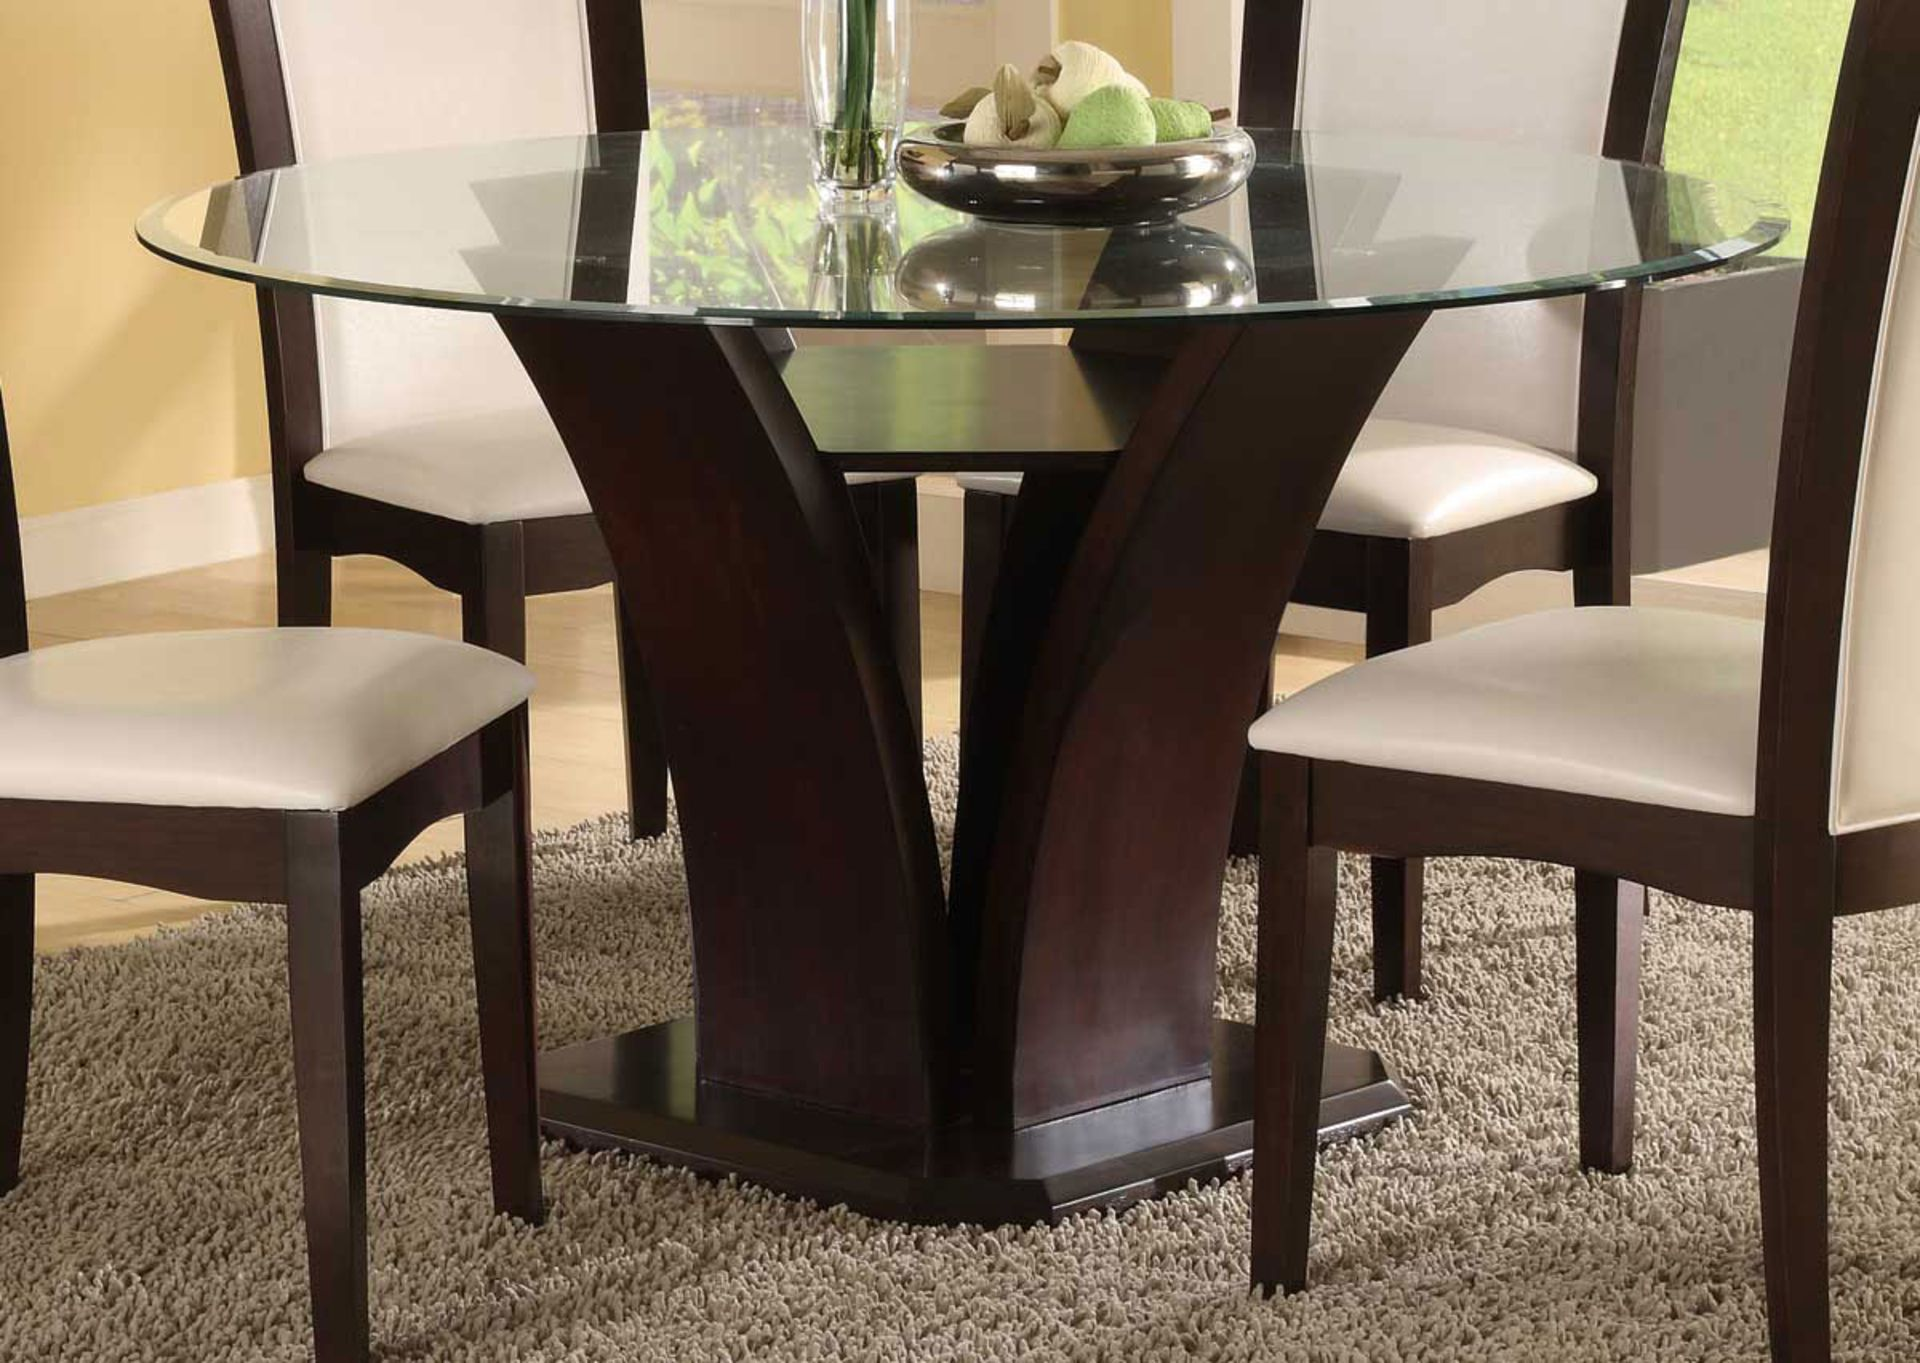 modern round dining table a new family tradition glass round kitchen table Elegant Design Of Modern Round Dining Table With Glass Top